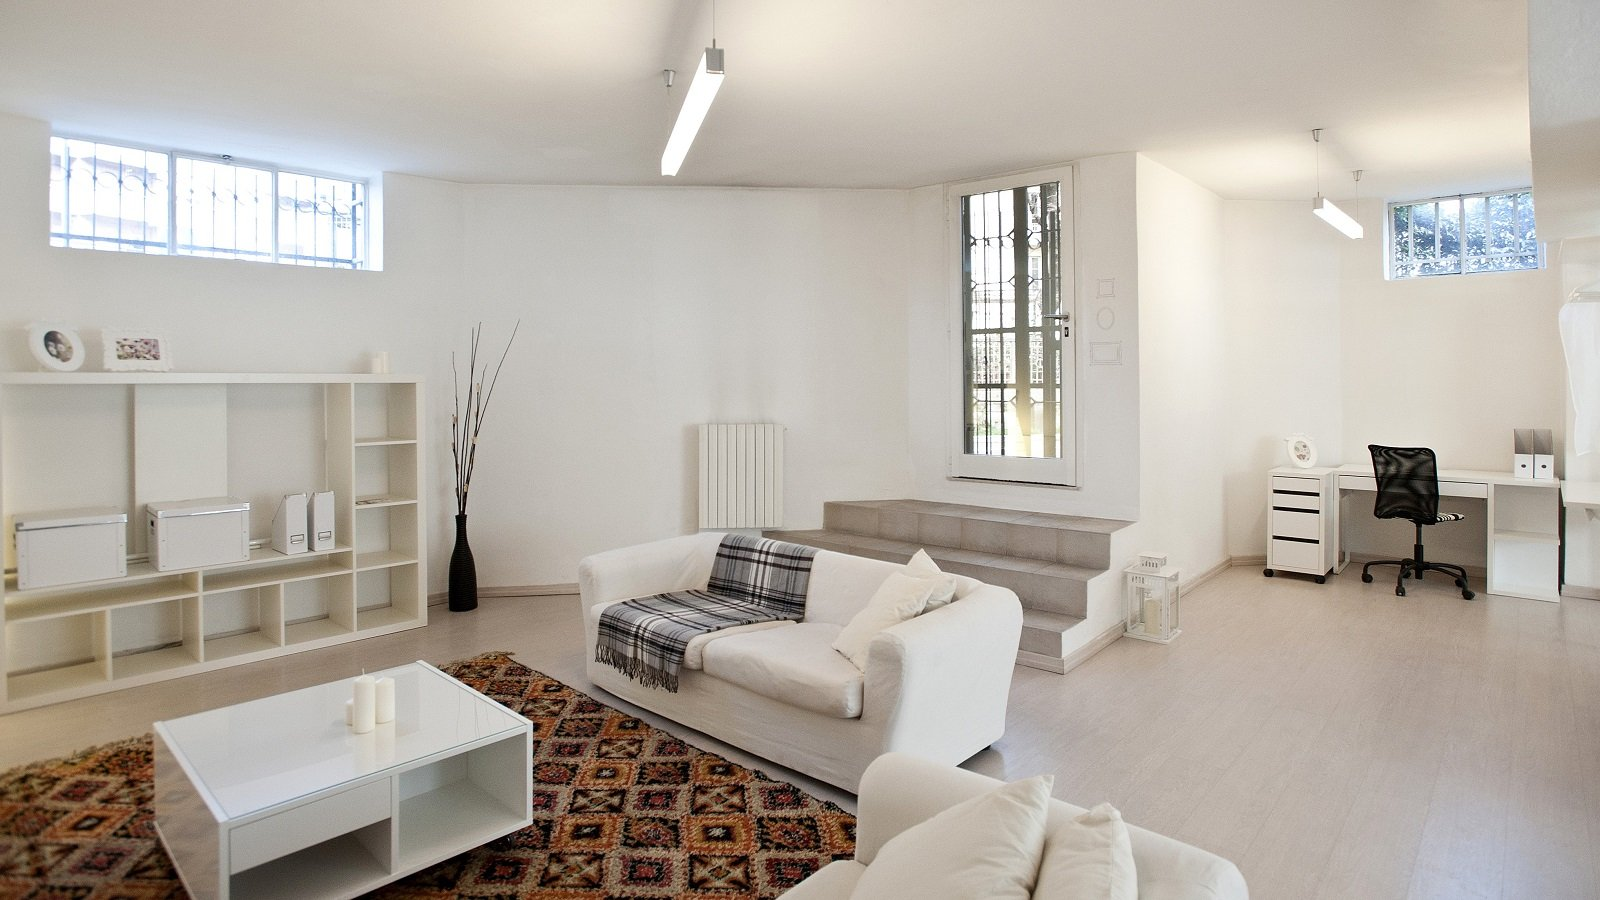 Mini loft al piano terra pi luce nell 39 open space con le for Costruire un appartamento garage